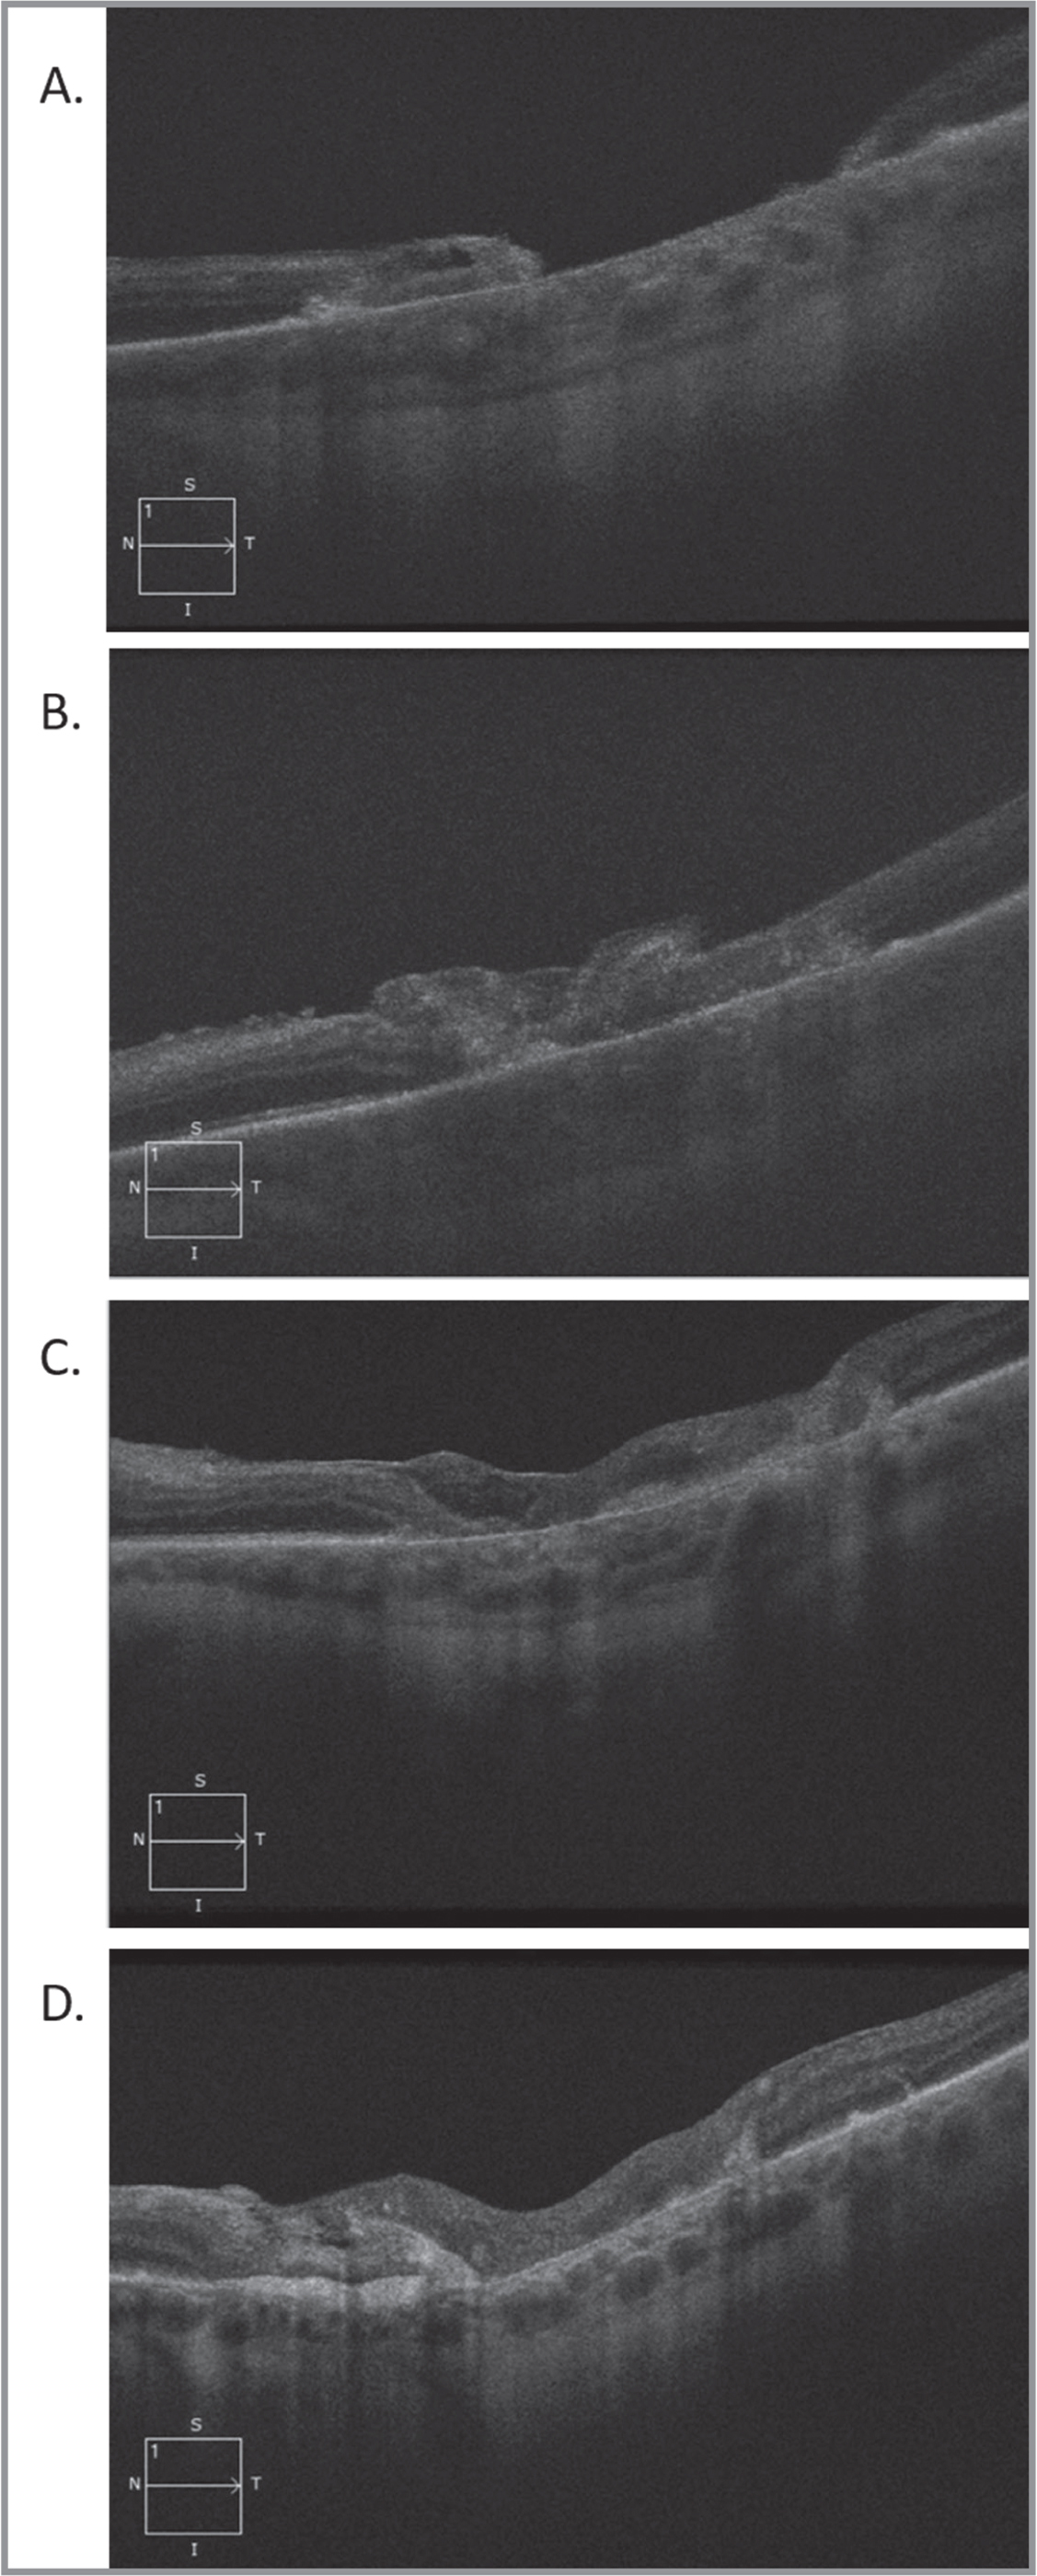 Autologous retinal transplant for a large traumatic macular hole (MH). A 59-year-old man with a history of a metal intraocular foreign body in the macula resulting in a large MH with underlying choroidal atrophy (A) and count fingers at 4 feet vision. He underwent vitrectomy, internal limiting membrane peeling, autologous retina transplant into the MH, and silicone oil tamponade for 3 months. The patient had hole closure with gradual integration of the autologous retina tissue over 1 week, 3 months, and 6 months after surgery. His best-corrected visual acuity improved to 20/200-1.